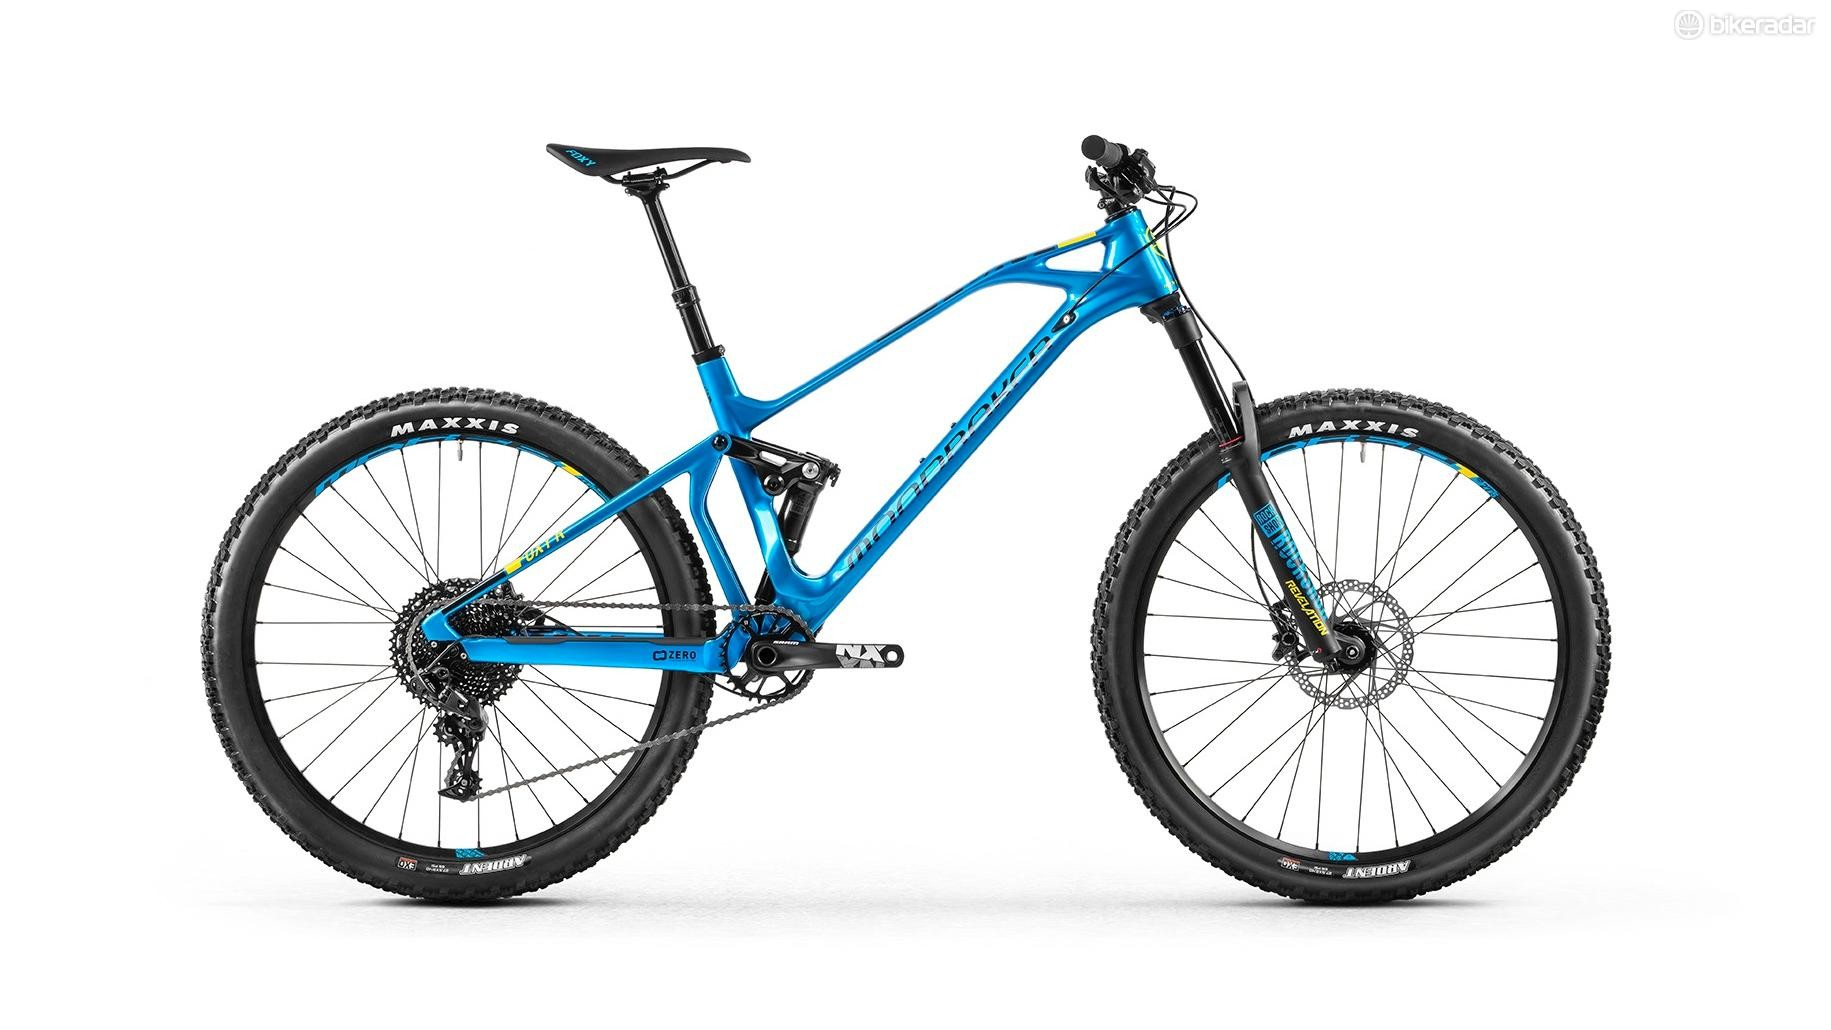 This is the cheaper (prices TBC) Carbon R, still looks tidy, no?